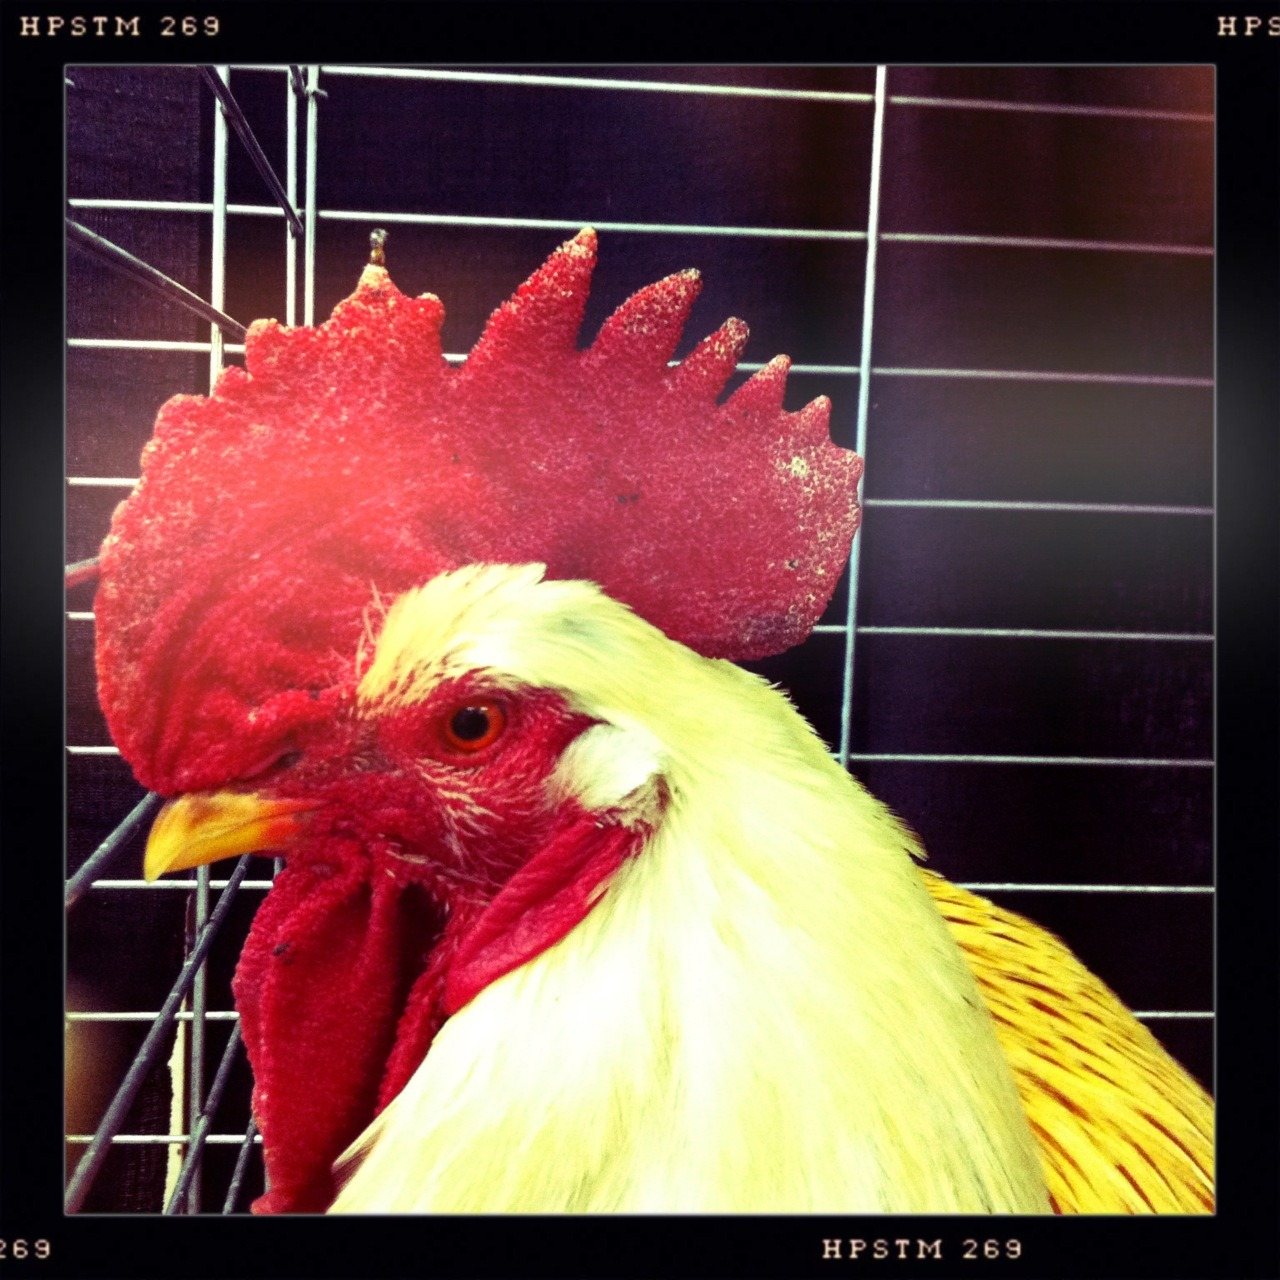 Rooster Taken with Hipstamatic, Chunky Lens, Pistil Film, No Flash.